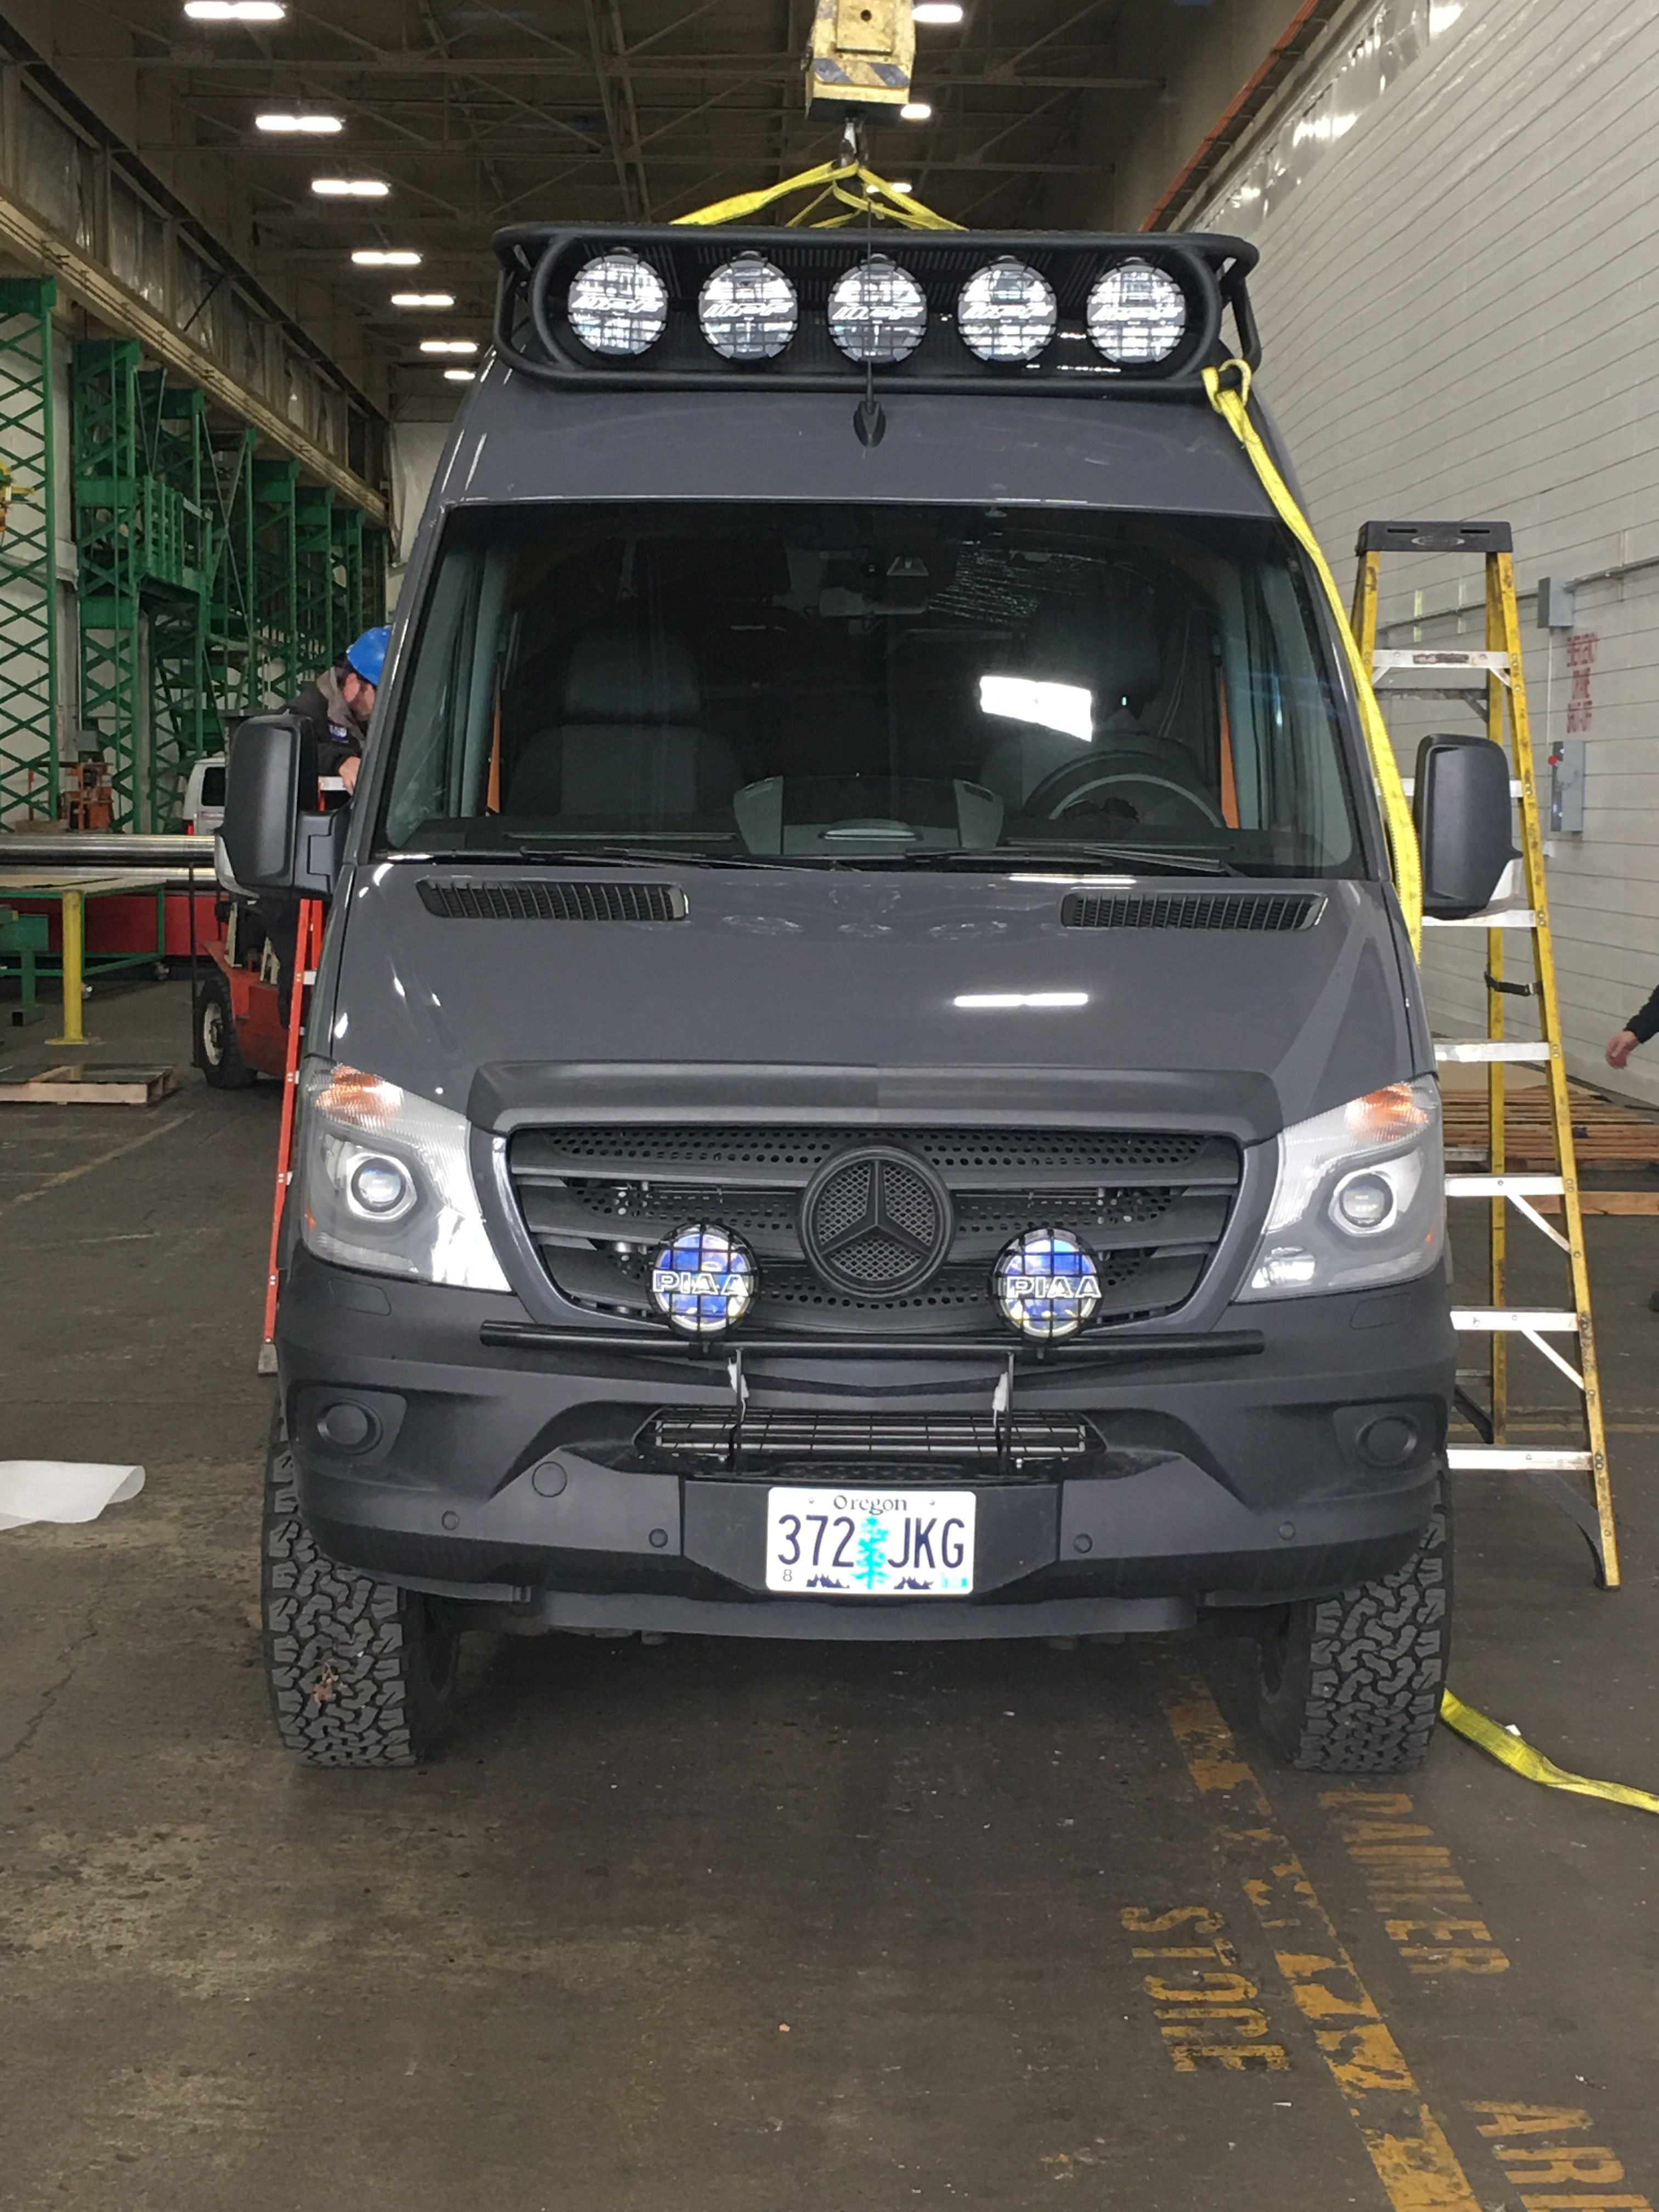 awnings mercedes ntaw fleet and pin for wrap integritysound awning vehicles pinterest van partialwrap vehicle partial sprinter